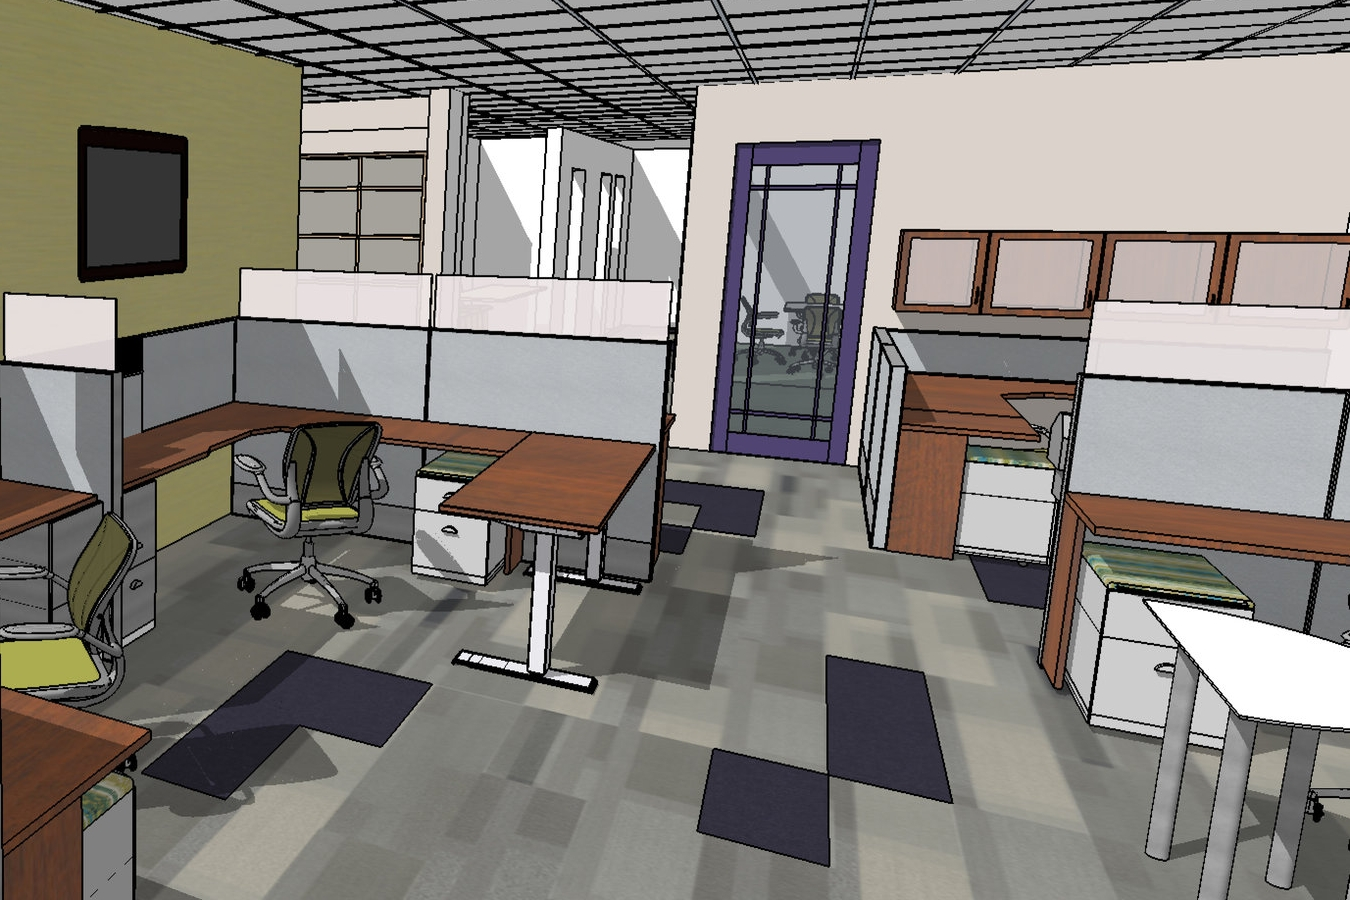 hf-planners-facility-design-facility-designers-commercial-interior-design-rendering.jpg